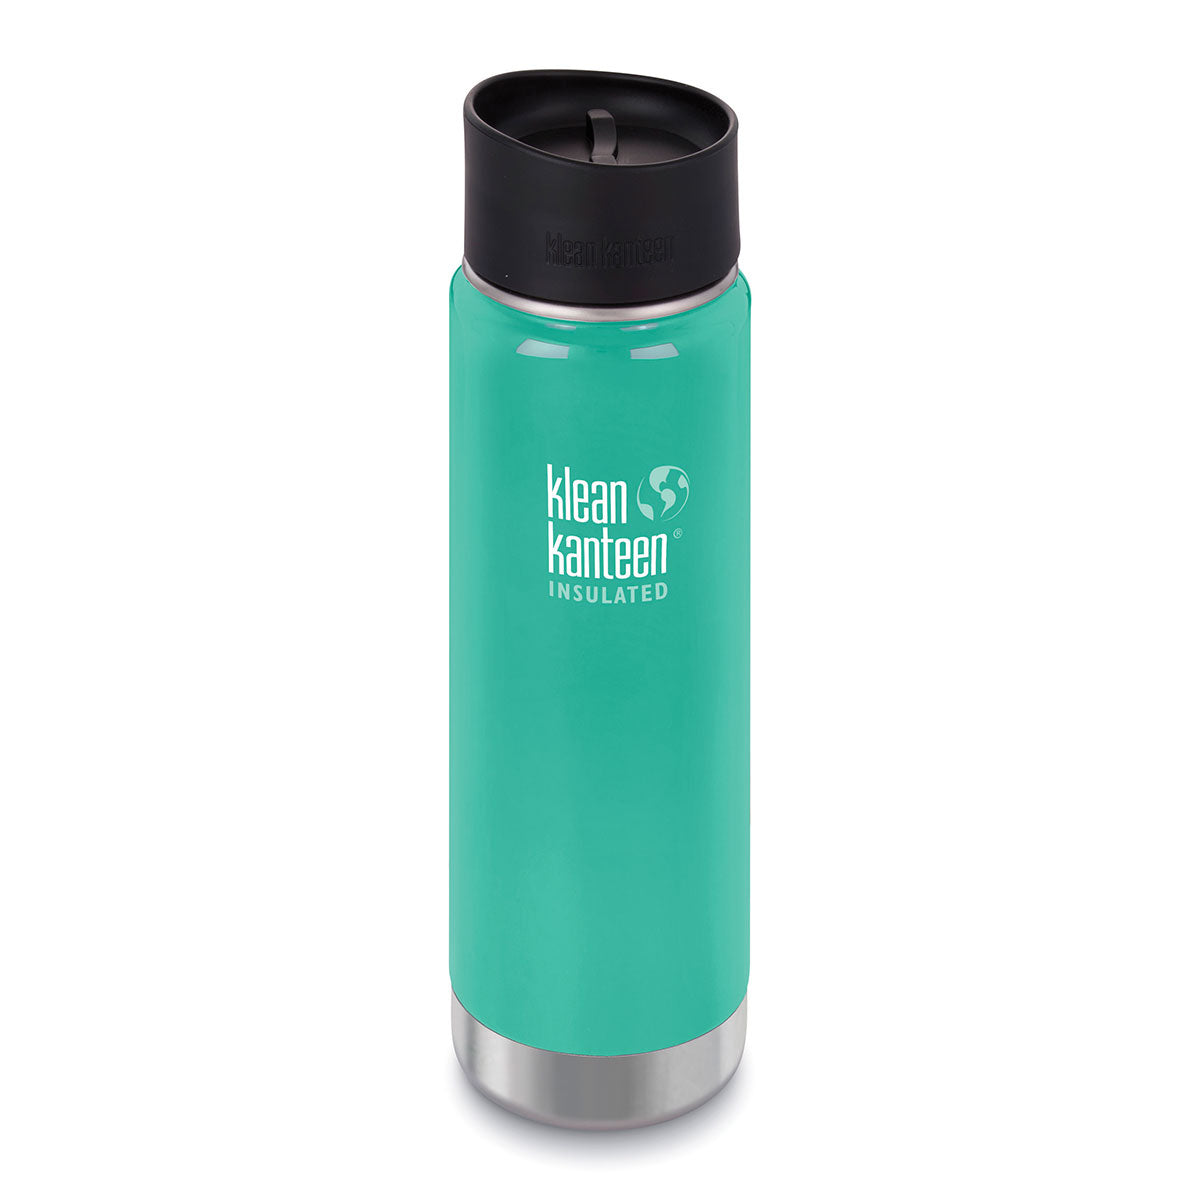 Klean Kanteen Insulated Classic Wide 20oz (592ml)